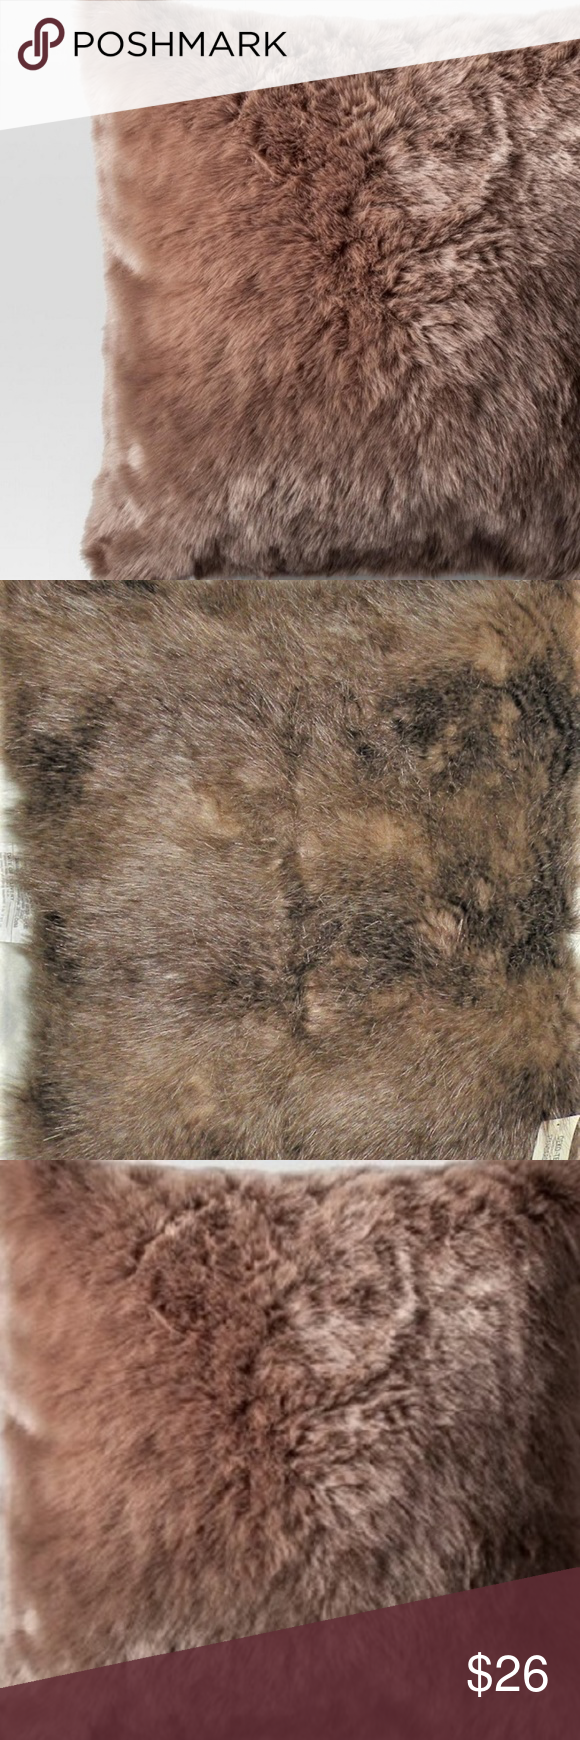 Mongolian Faux Fur Square Throw Pillow Project 62 Project 62 Mongolian Faux Fur ...